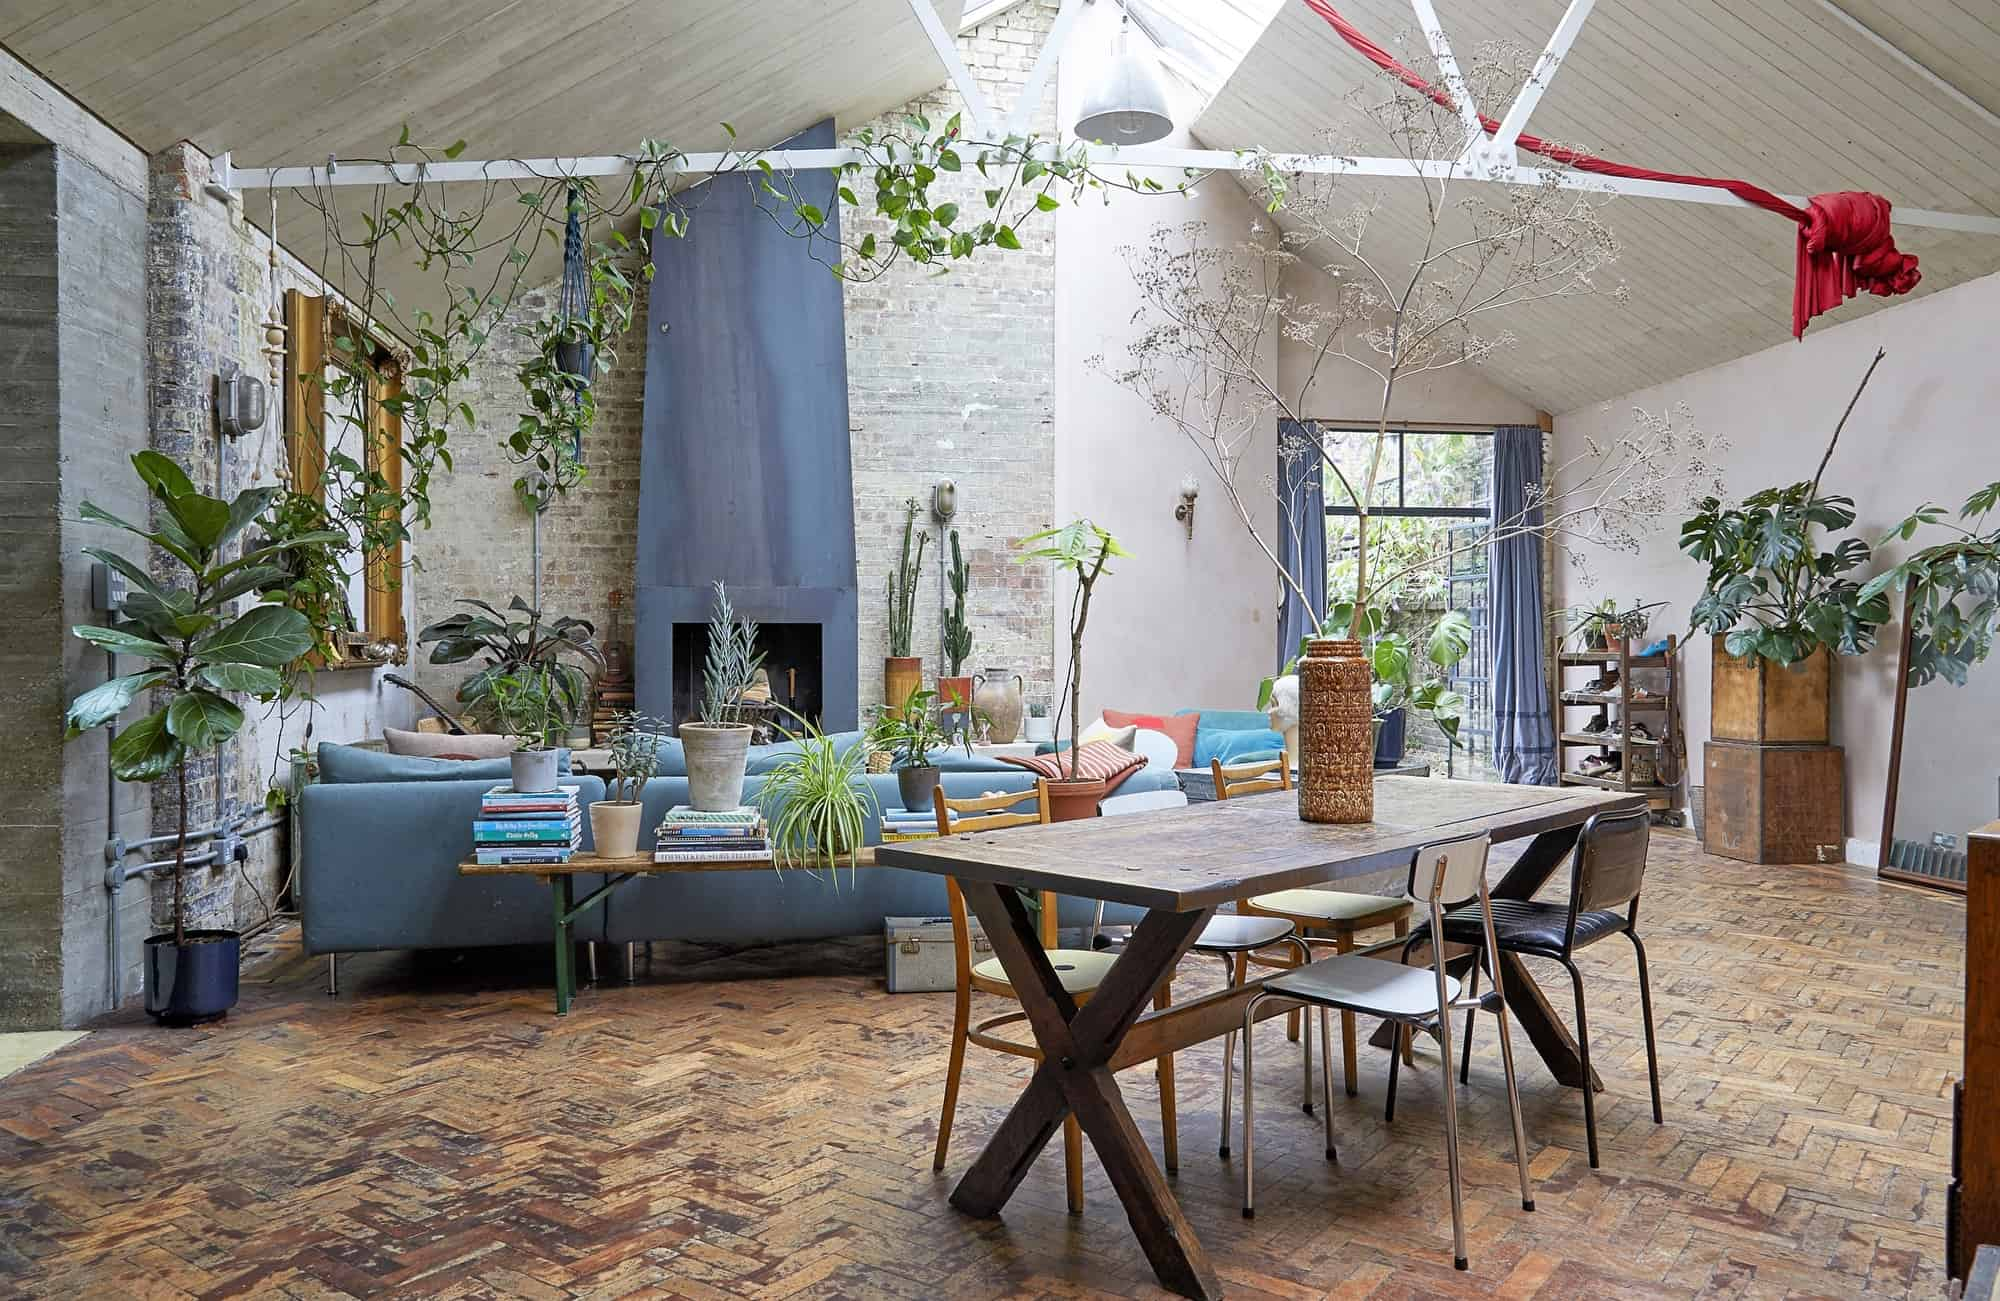 The Old laundry E5 - Versatile shoot location in a London Warehouse with exposed brick, concrete and lots of quirky features - The Location Guys